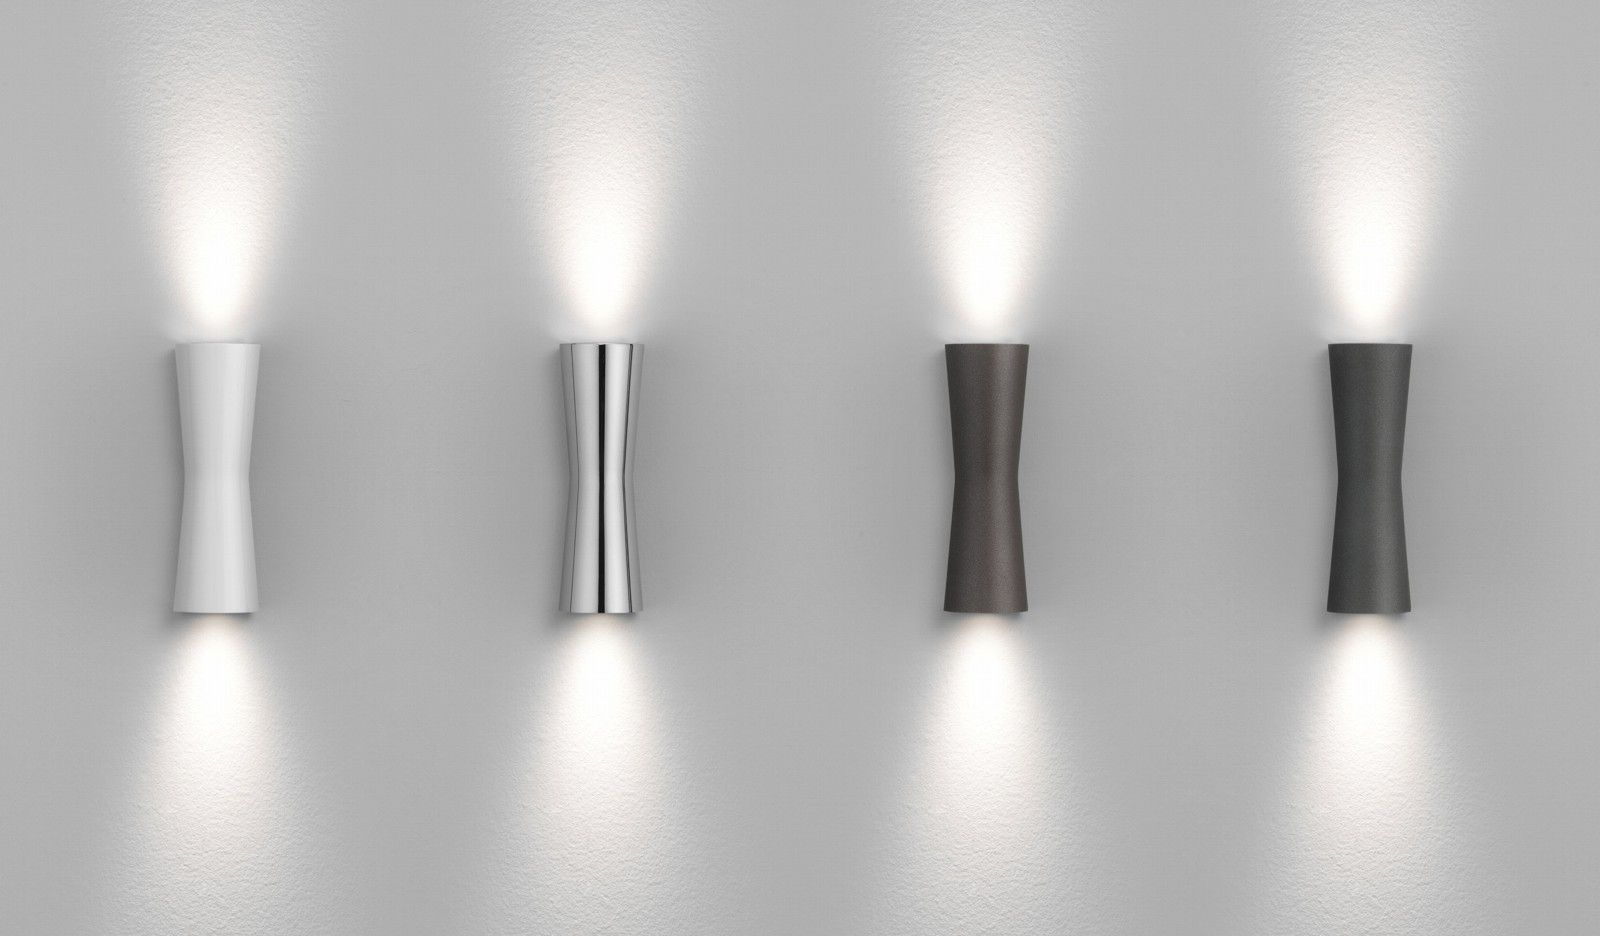 15 collection of up and down outdoor wall lighting modern concept up down outdoor lighting with up and down wall lamp with up and down mozeypictures Image collections